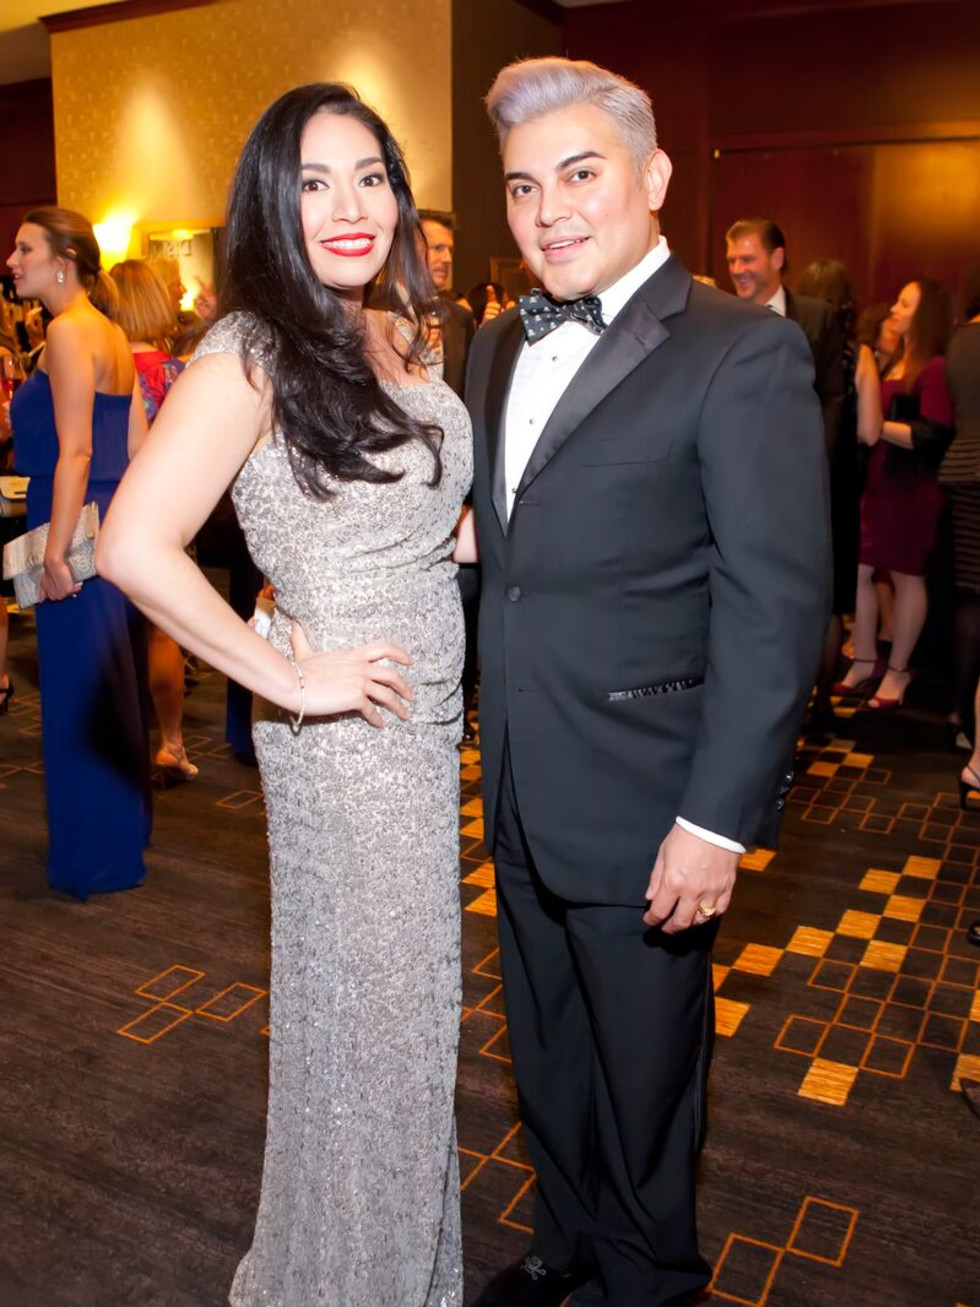 Enid Sanchez and Edward Sanchez at Planned Parenthood Gala